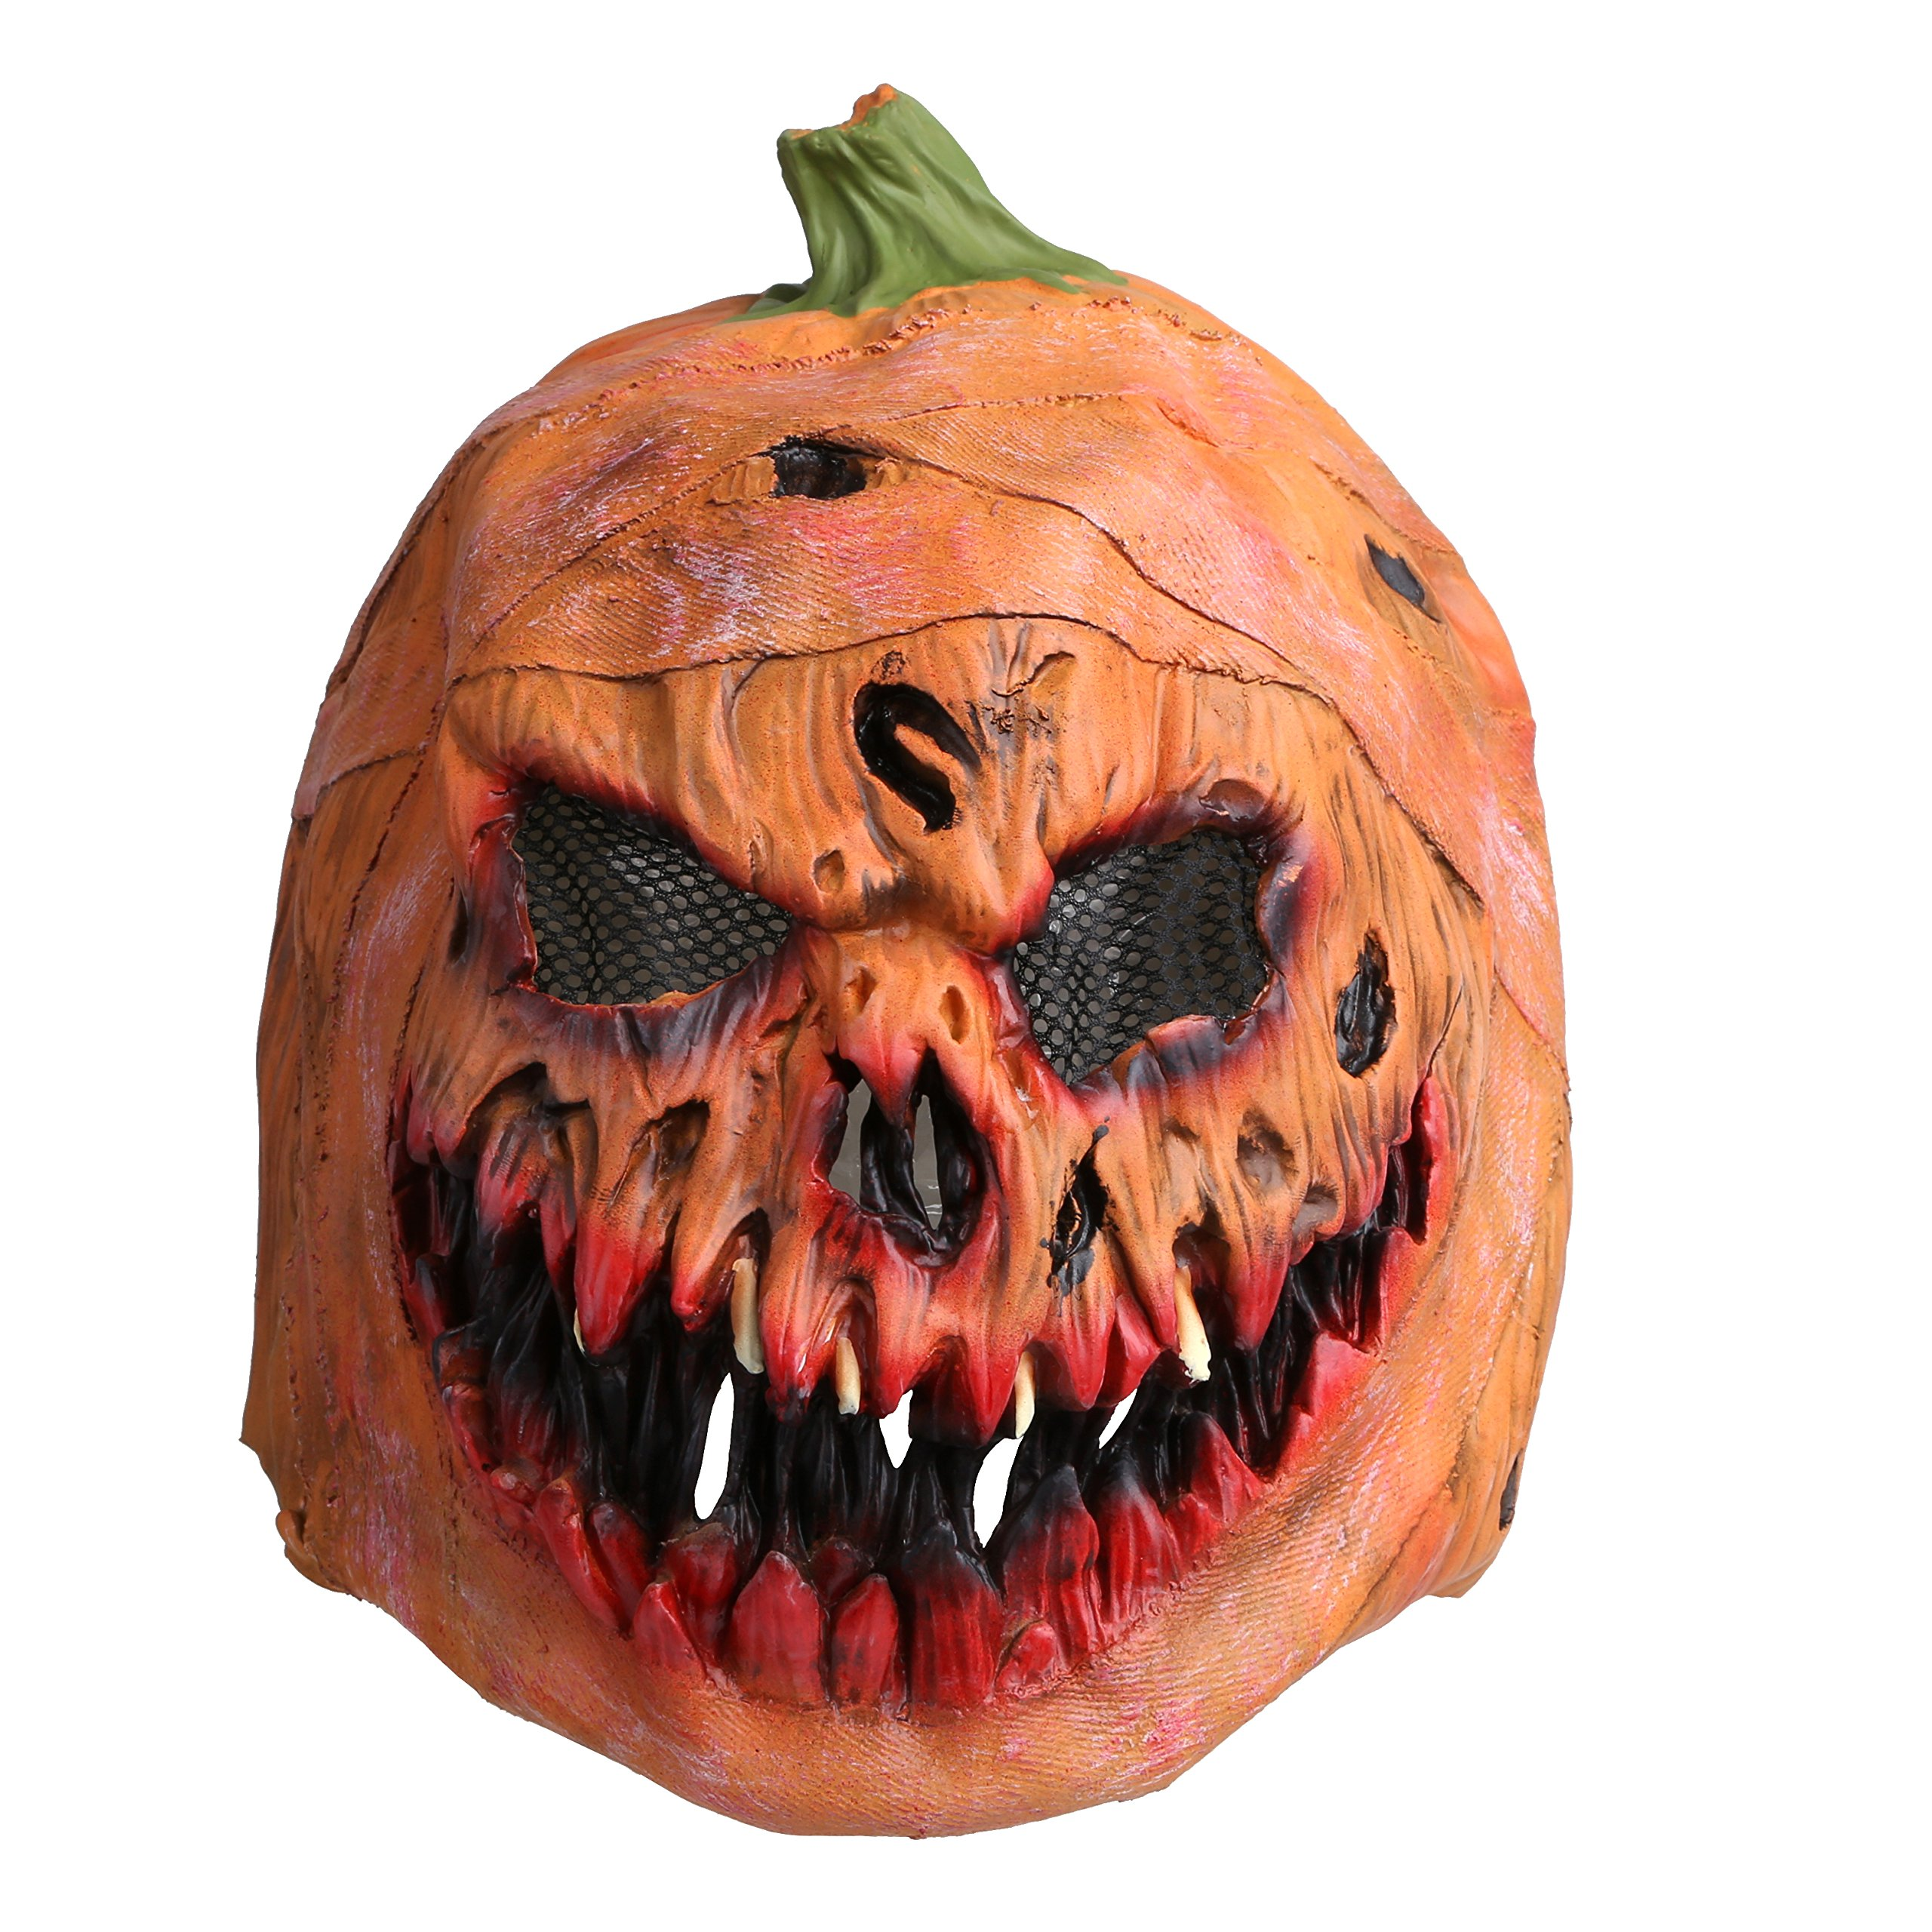 Pumpkin Head Mask, Latex Scarlet Scary Mask with Mesh Props for Masquerade Halloween by Smays